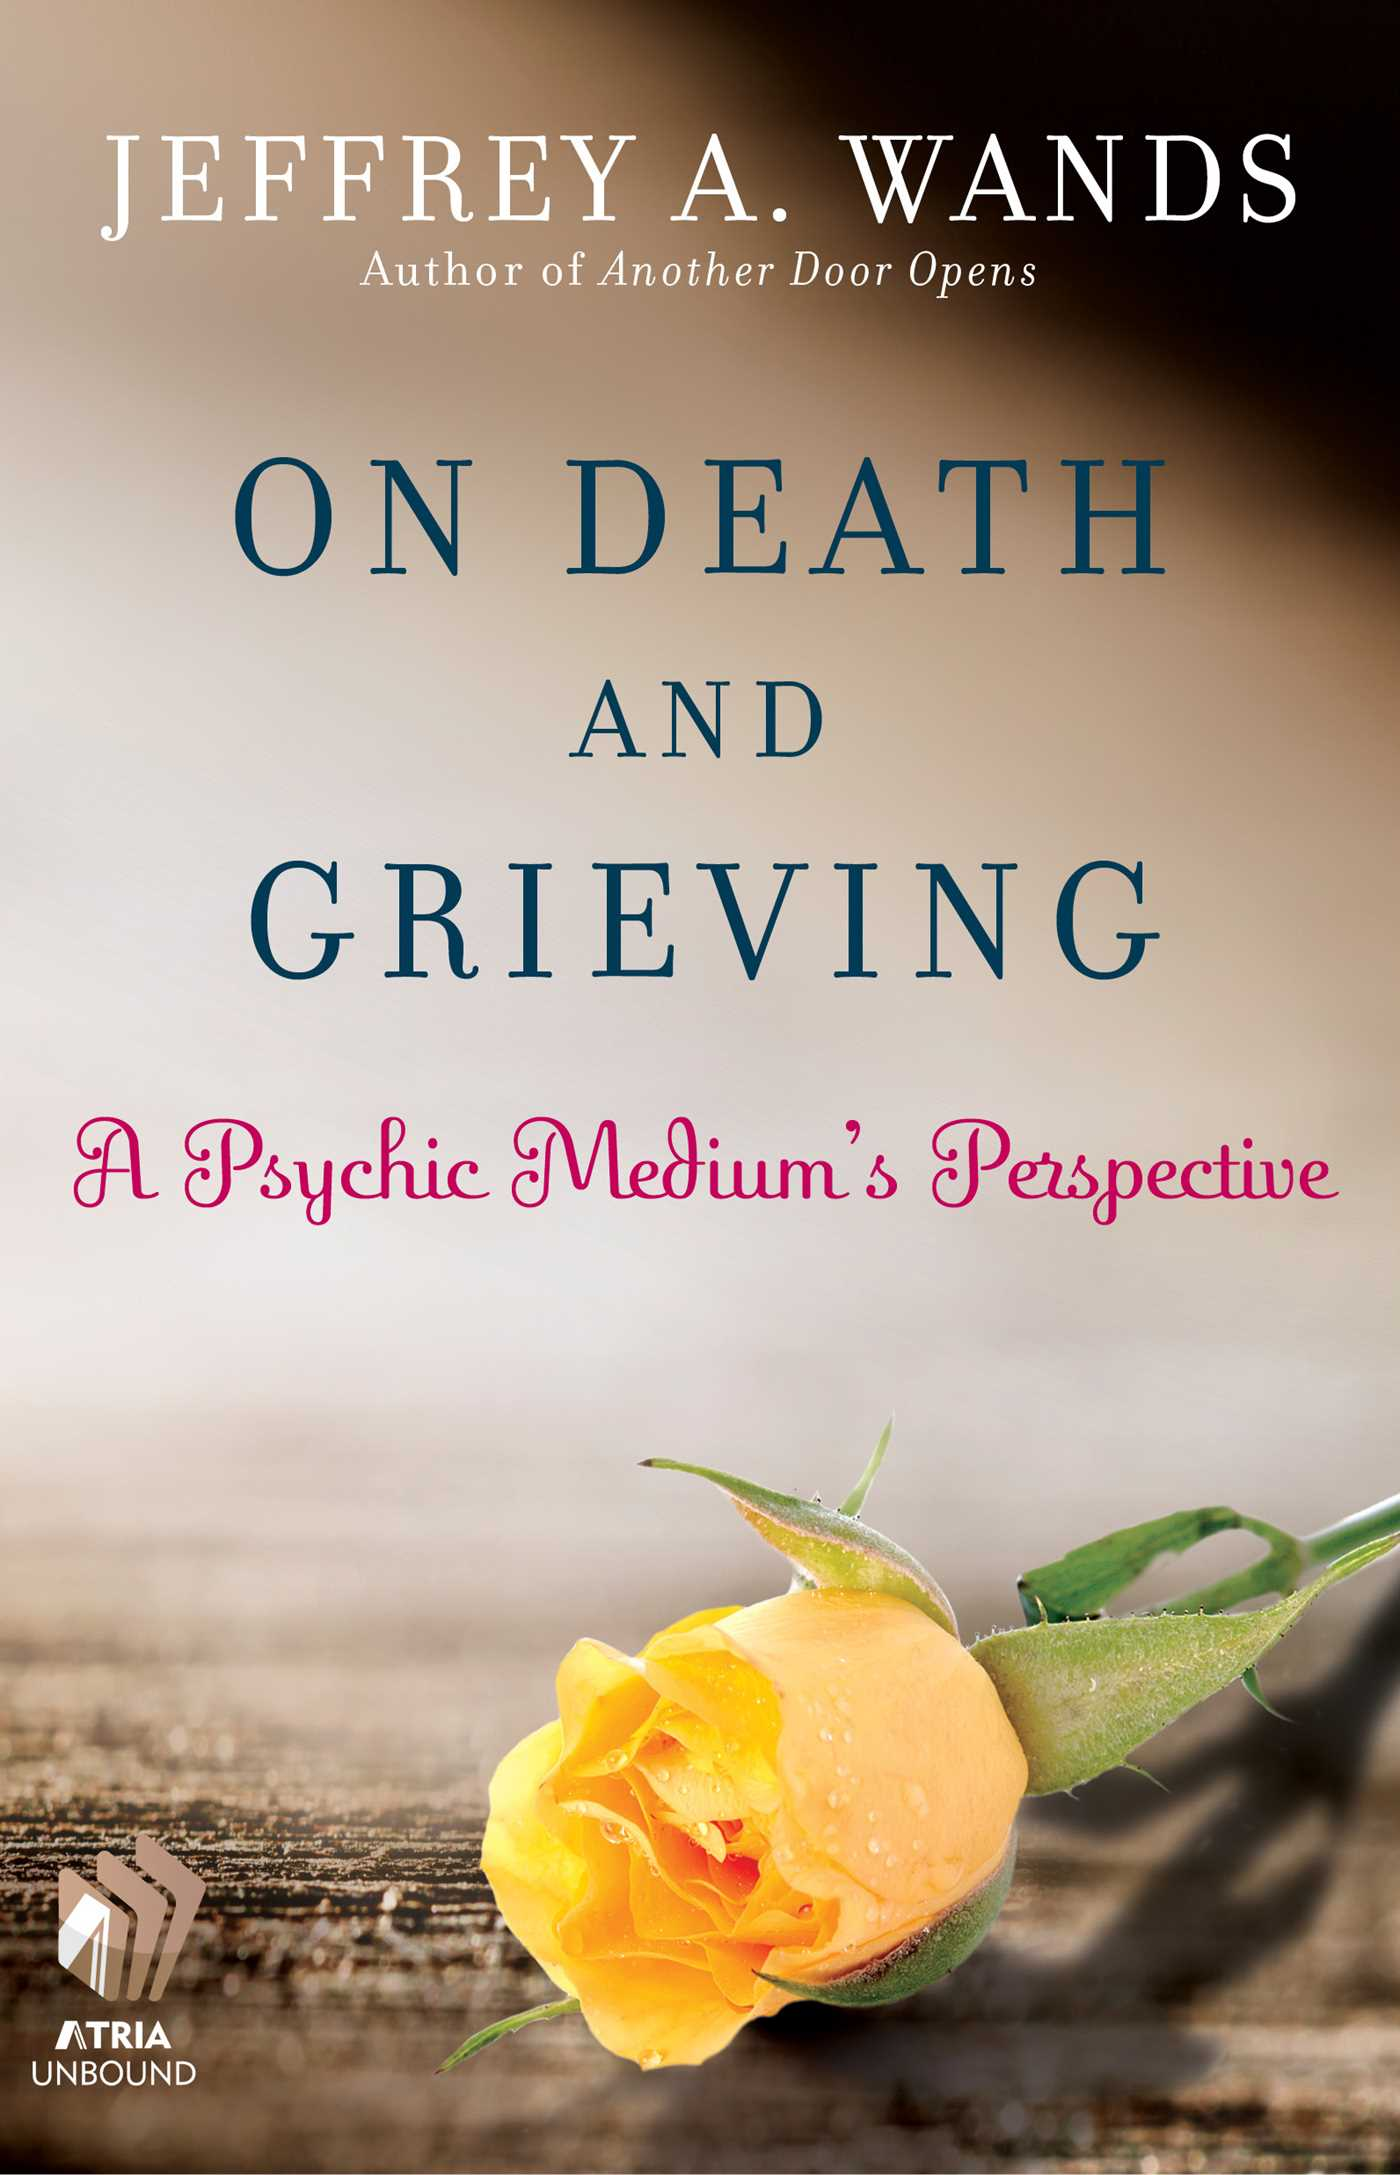 On death and grieving 9781451685183 hr